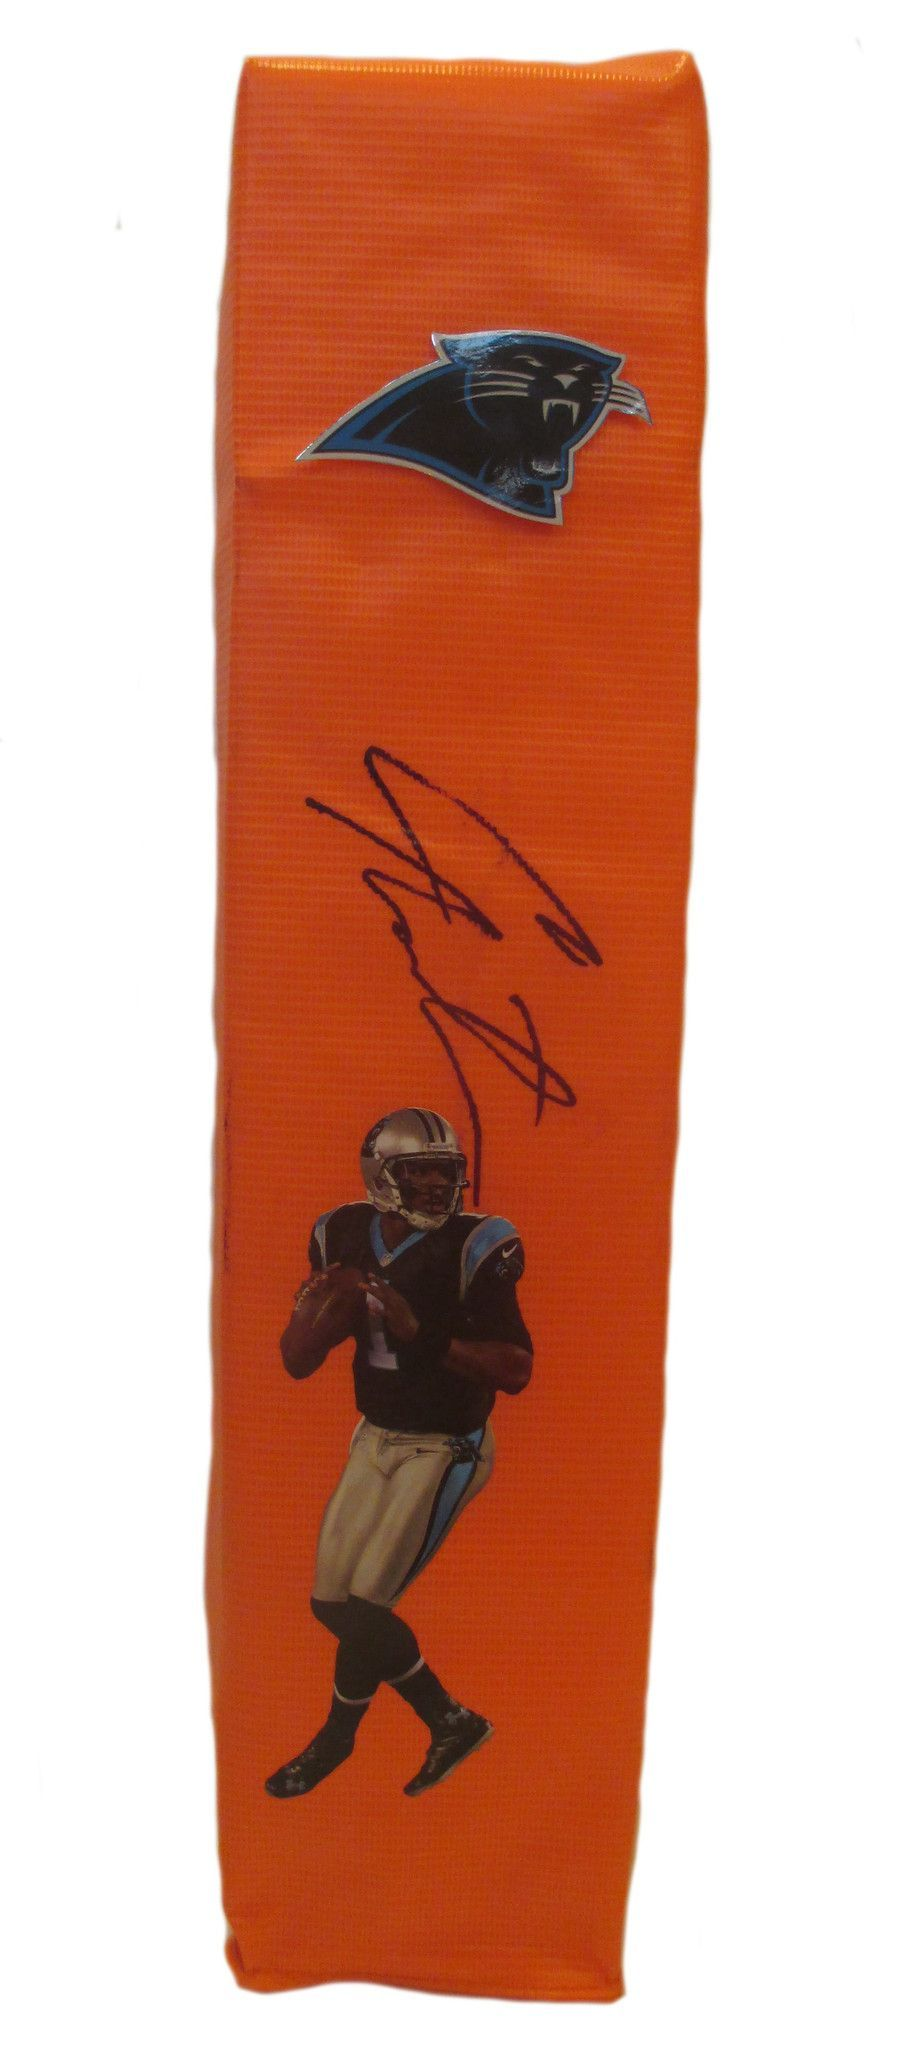 online store 8974a d6851 Cam Newton Autographed Carolina Panthers Full Size Photo ...